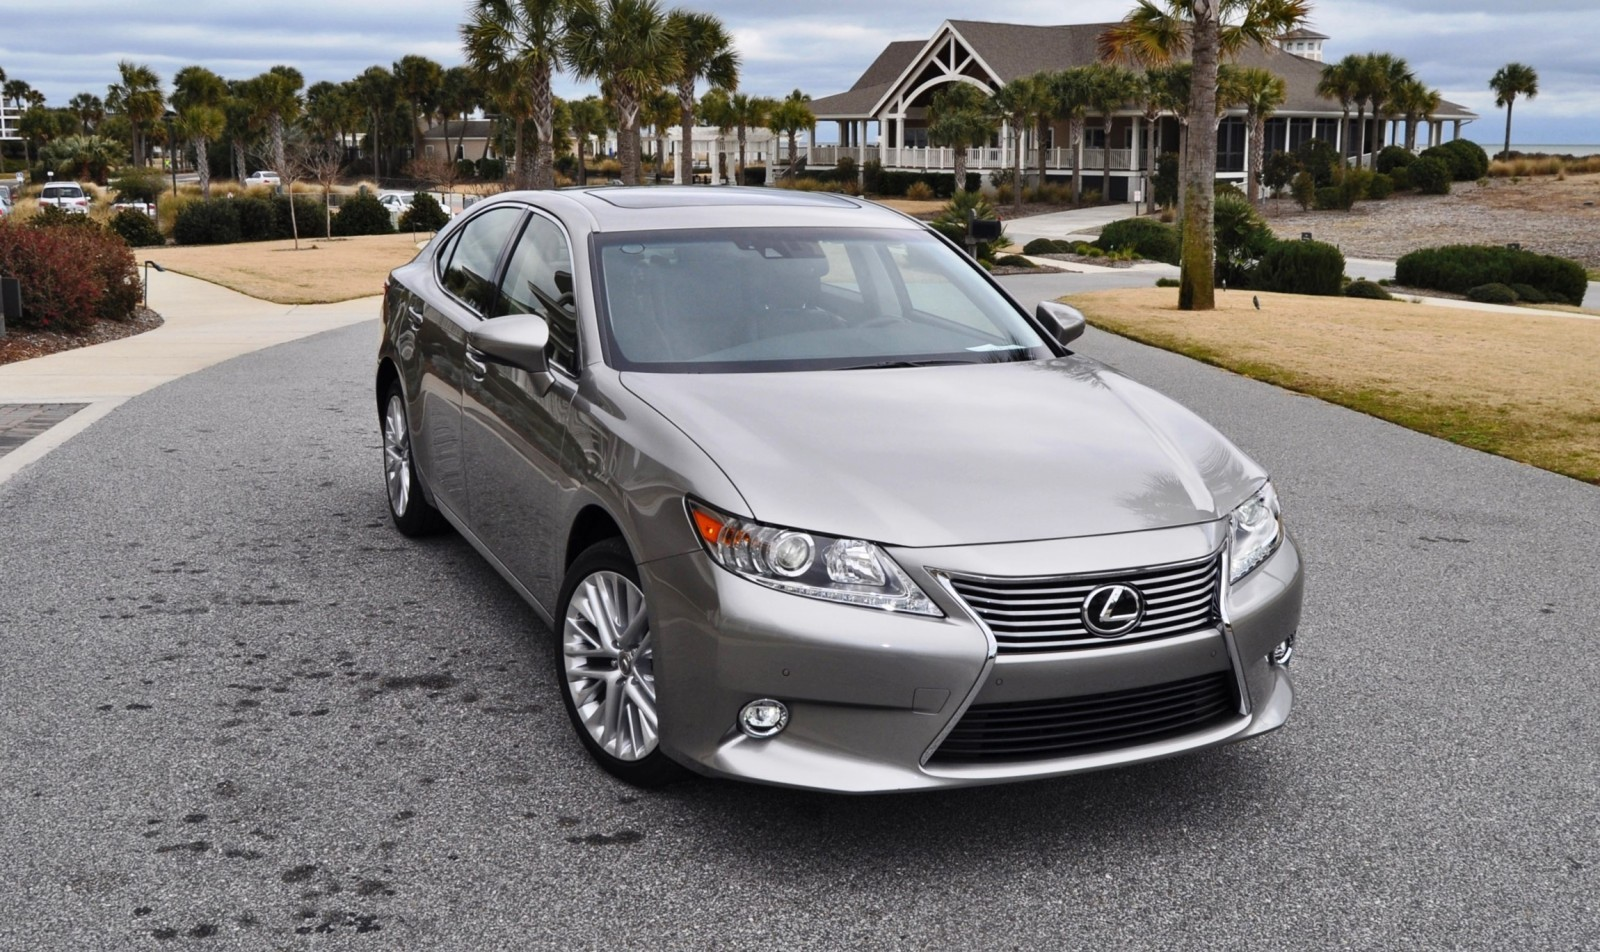 2016 lexus es 350 review ratings edmunds 2017 2018 best cars reviews. Black Bedroom Furniture Sets. Home Design Ideas